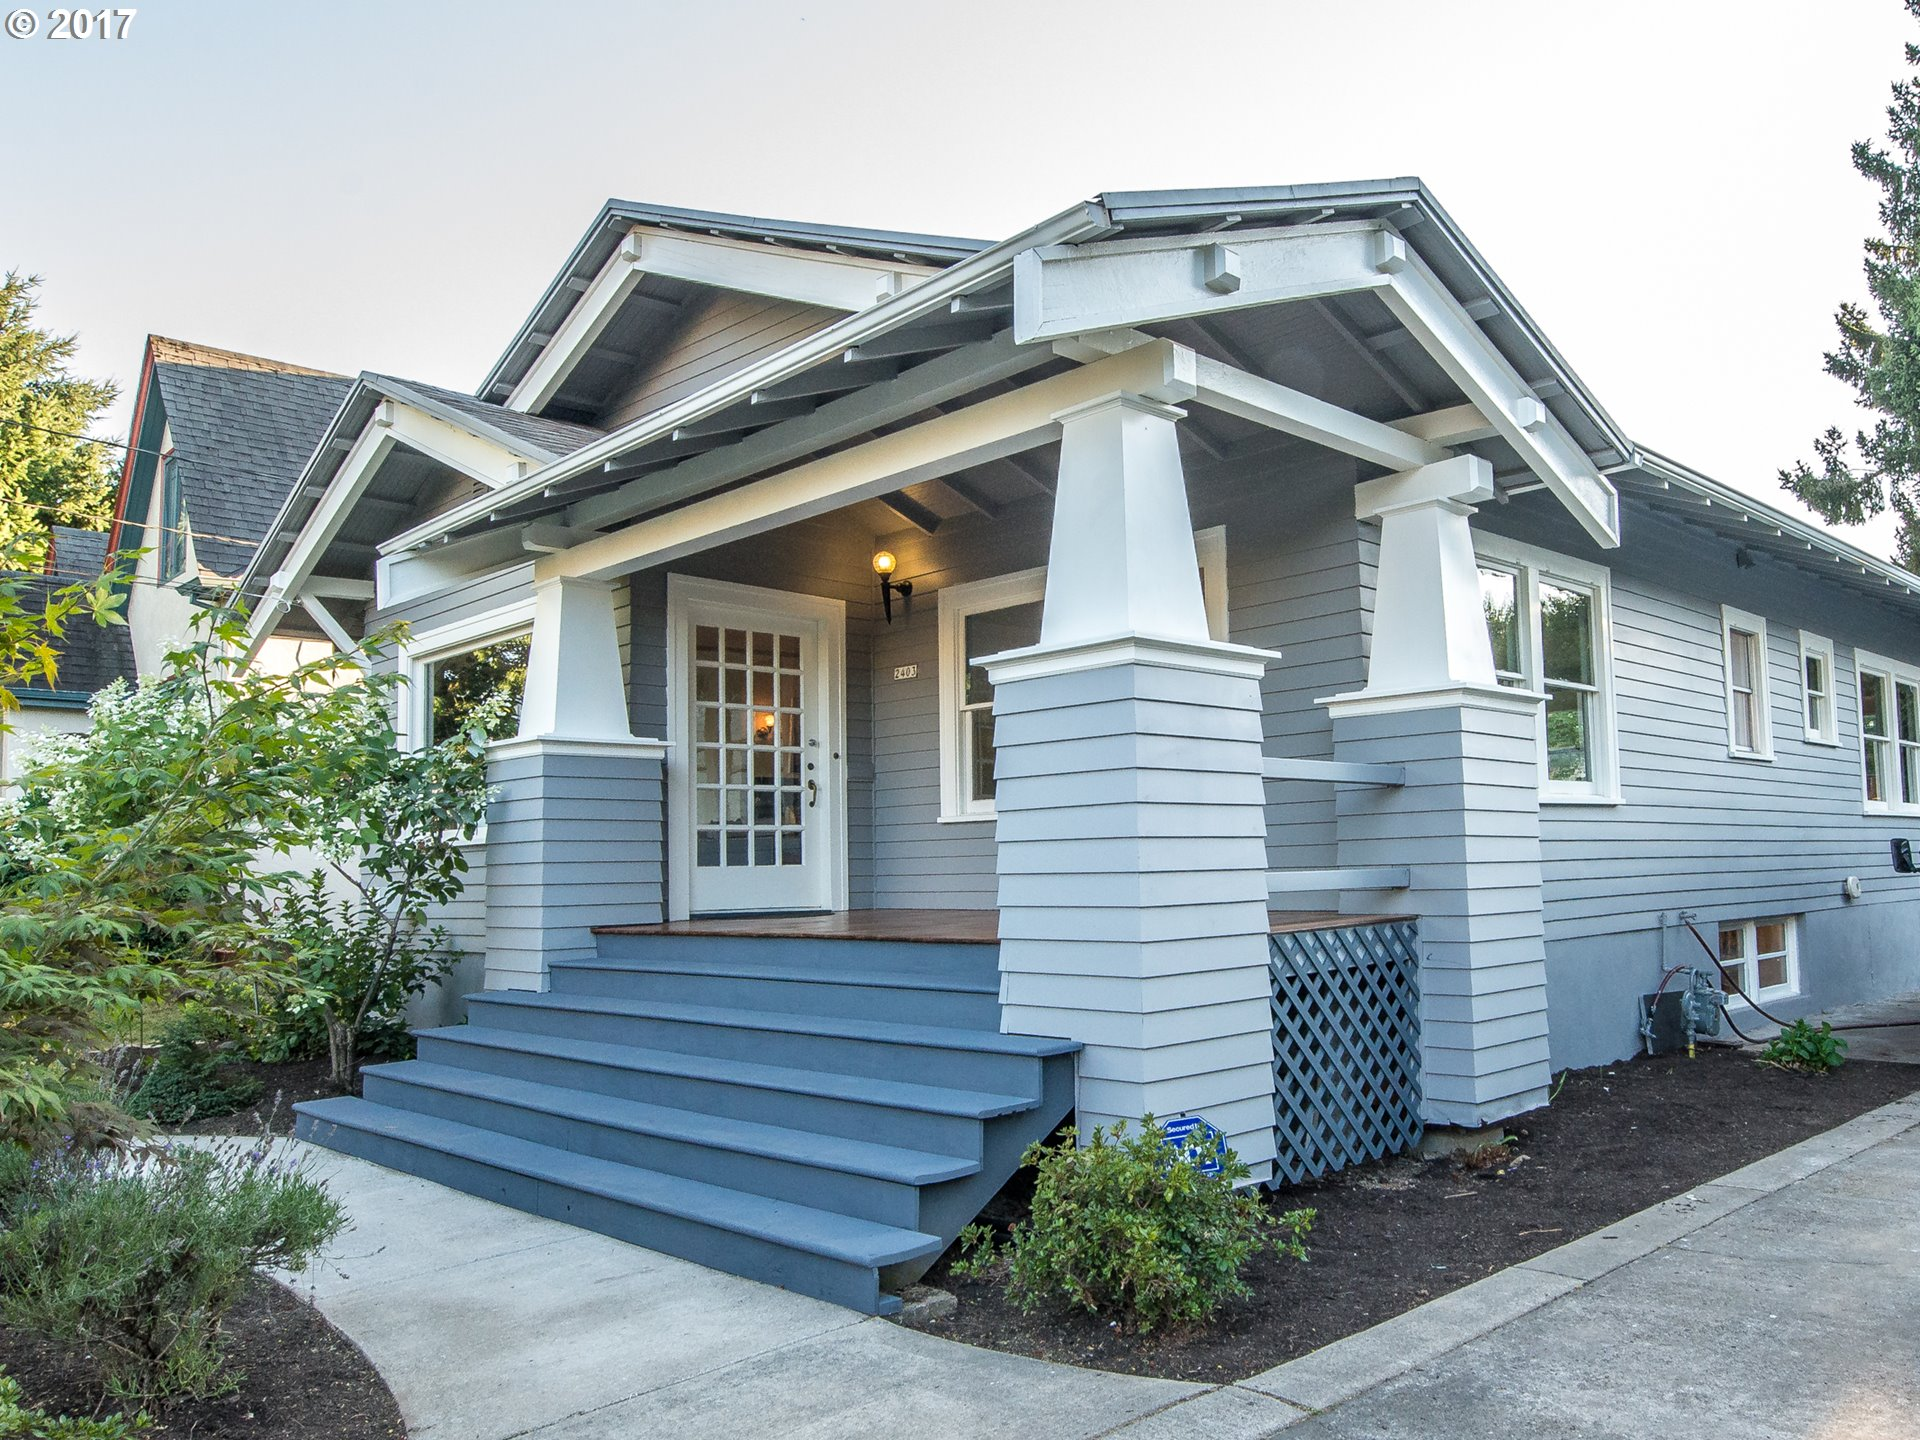 2452 sq. ft 2 bedrooms 1 bathrooms  House For Sale, Portland, OR